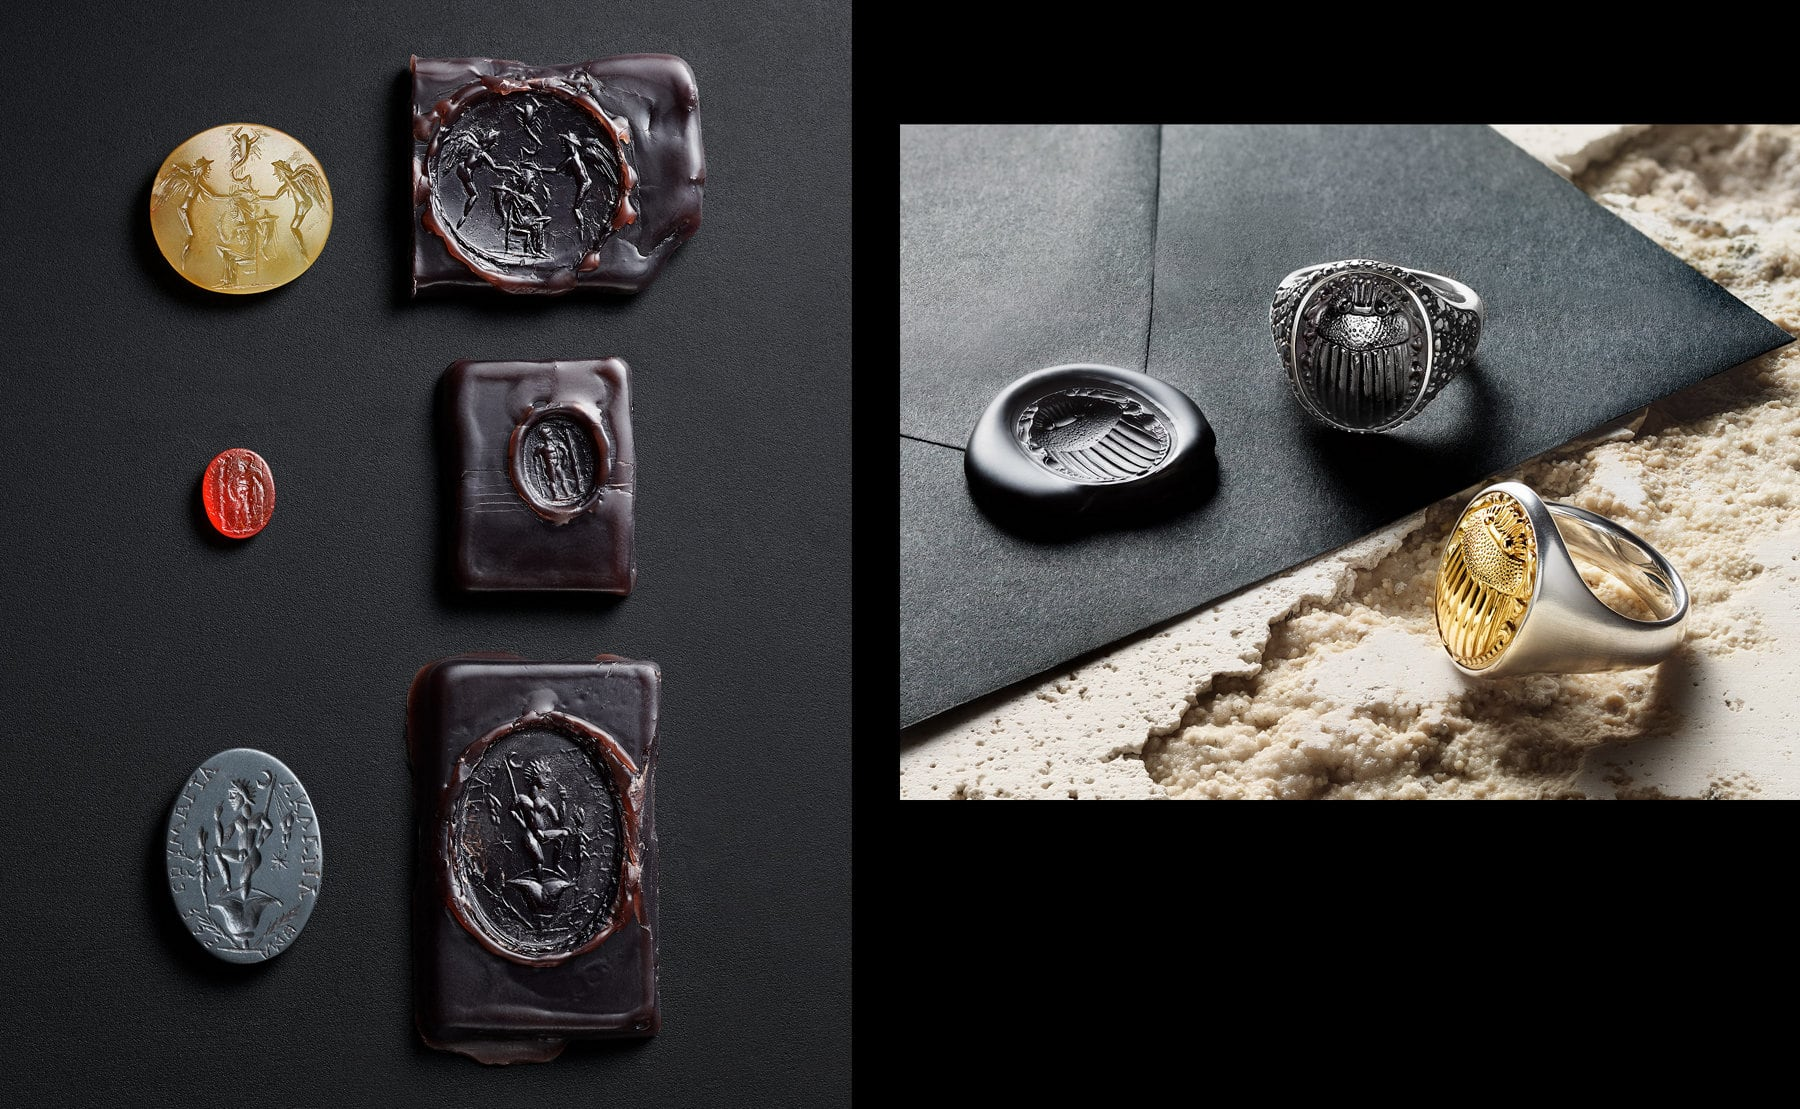 A photo collage shows two color photos. On the left is a shot of three gemstones intricately carved with angels or male figures next to blocks of wax stamped with the three intaglios. On the right is a shot of two David Yurman men's Petrvs® signet rings, crafted from sterling silver with an 18K yellow scarab or black onyx scarab with pavé black diamonds. The jewelry is placed on black envelope sealed with a wax imprint of a scarab atop a beige-hued stone surface.